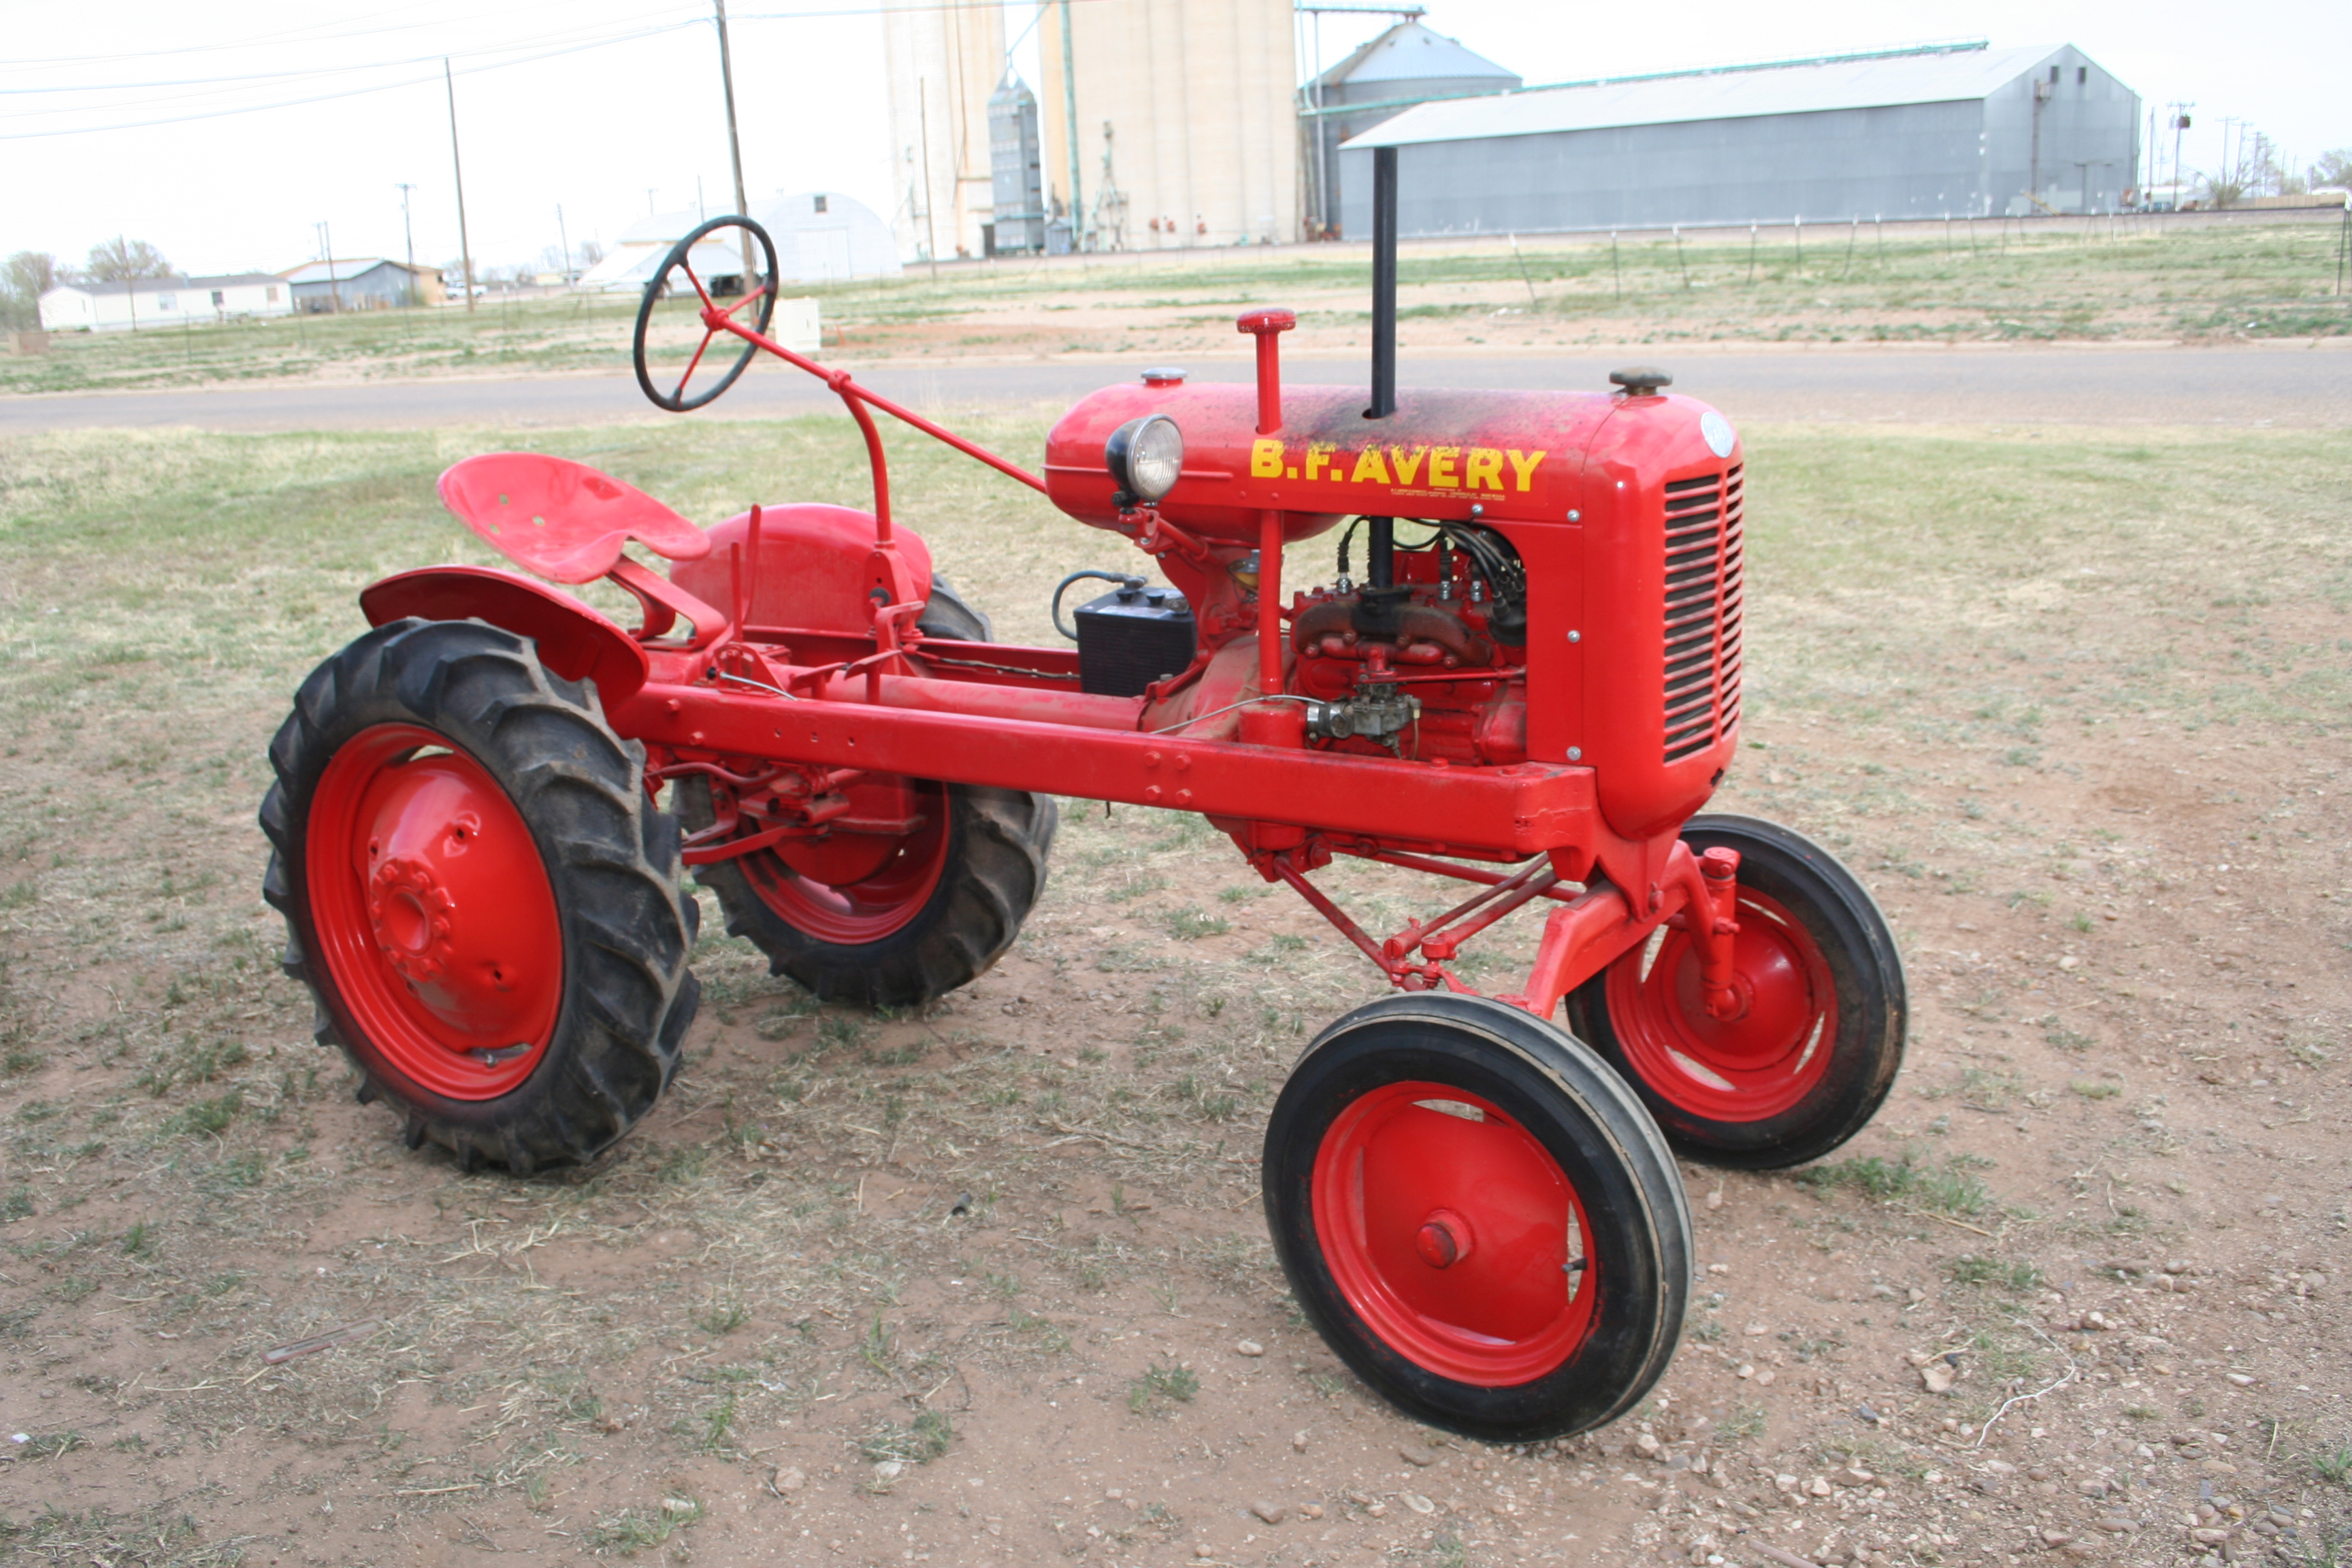 an introduction to the history of the tractor The case ih story jbcsgroup loading caseih 7200 series introduction discount tractors - the history of the tractor - 160 years and counting.